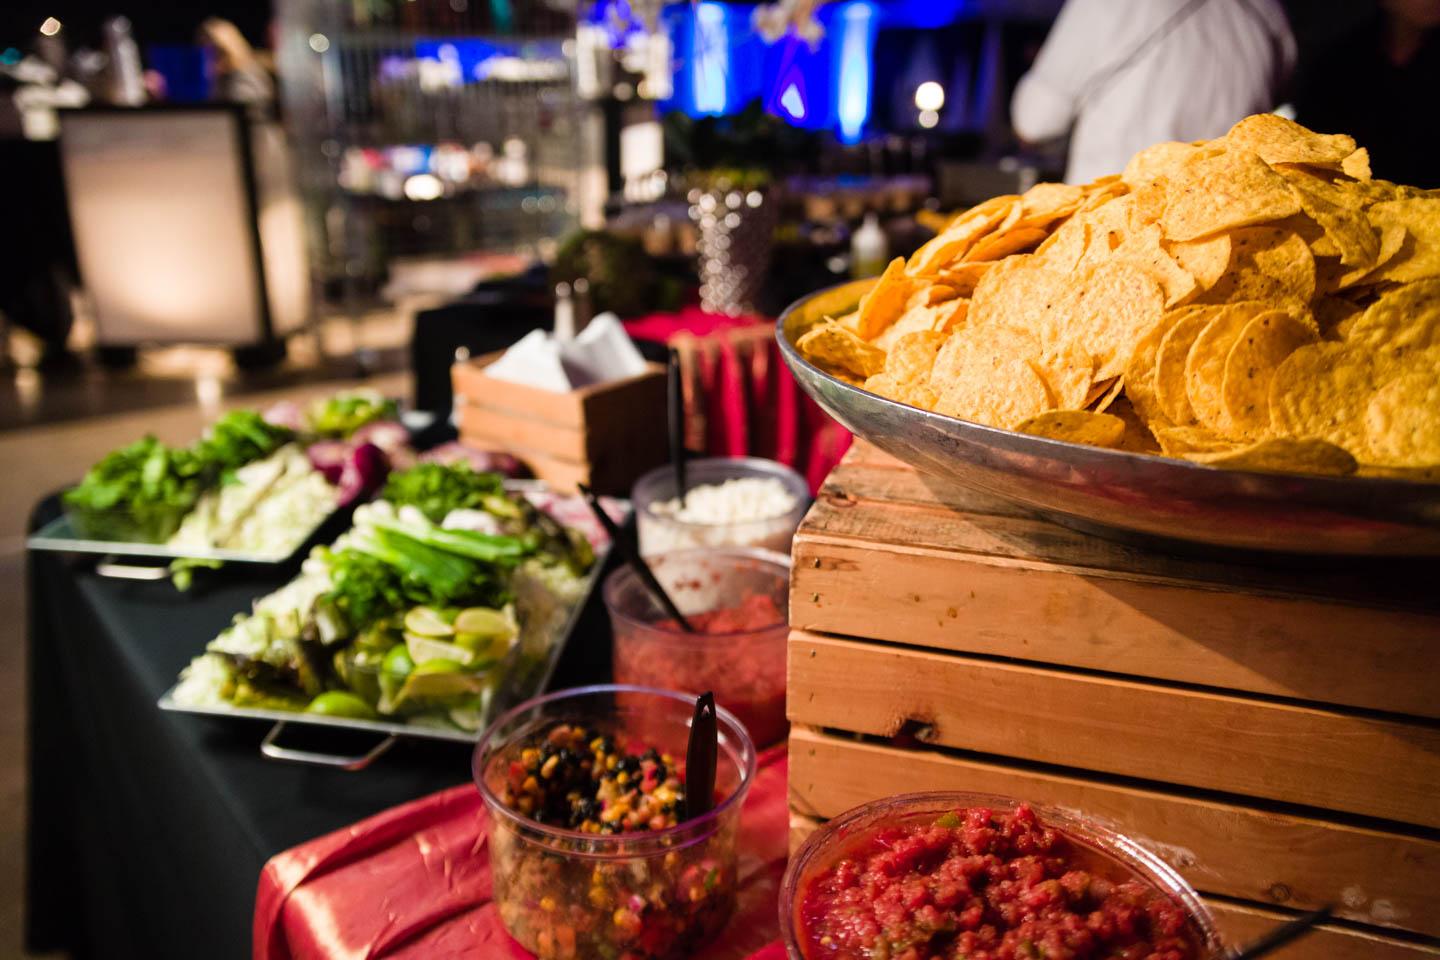 Chips and salsa for street tacos